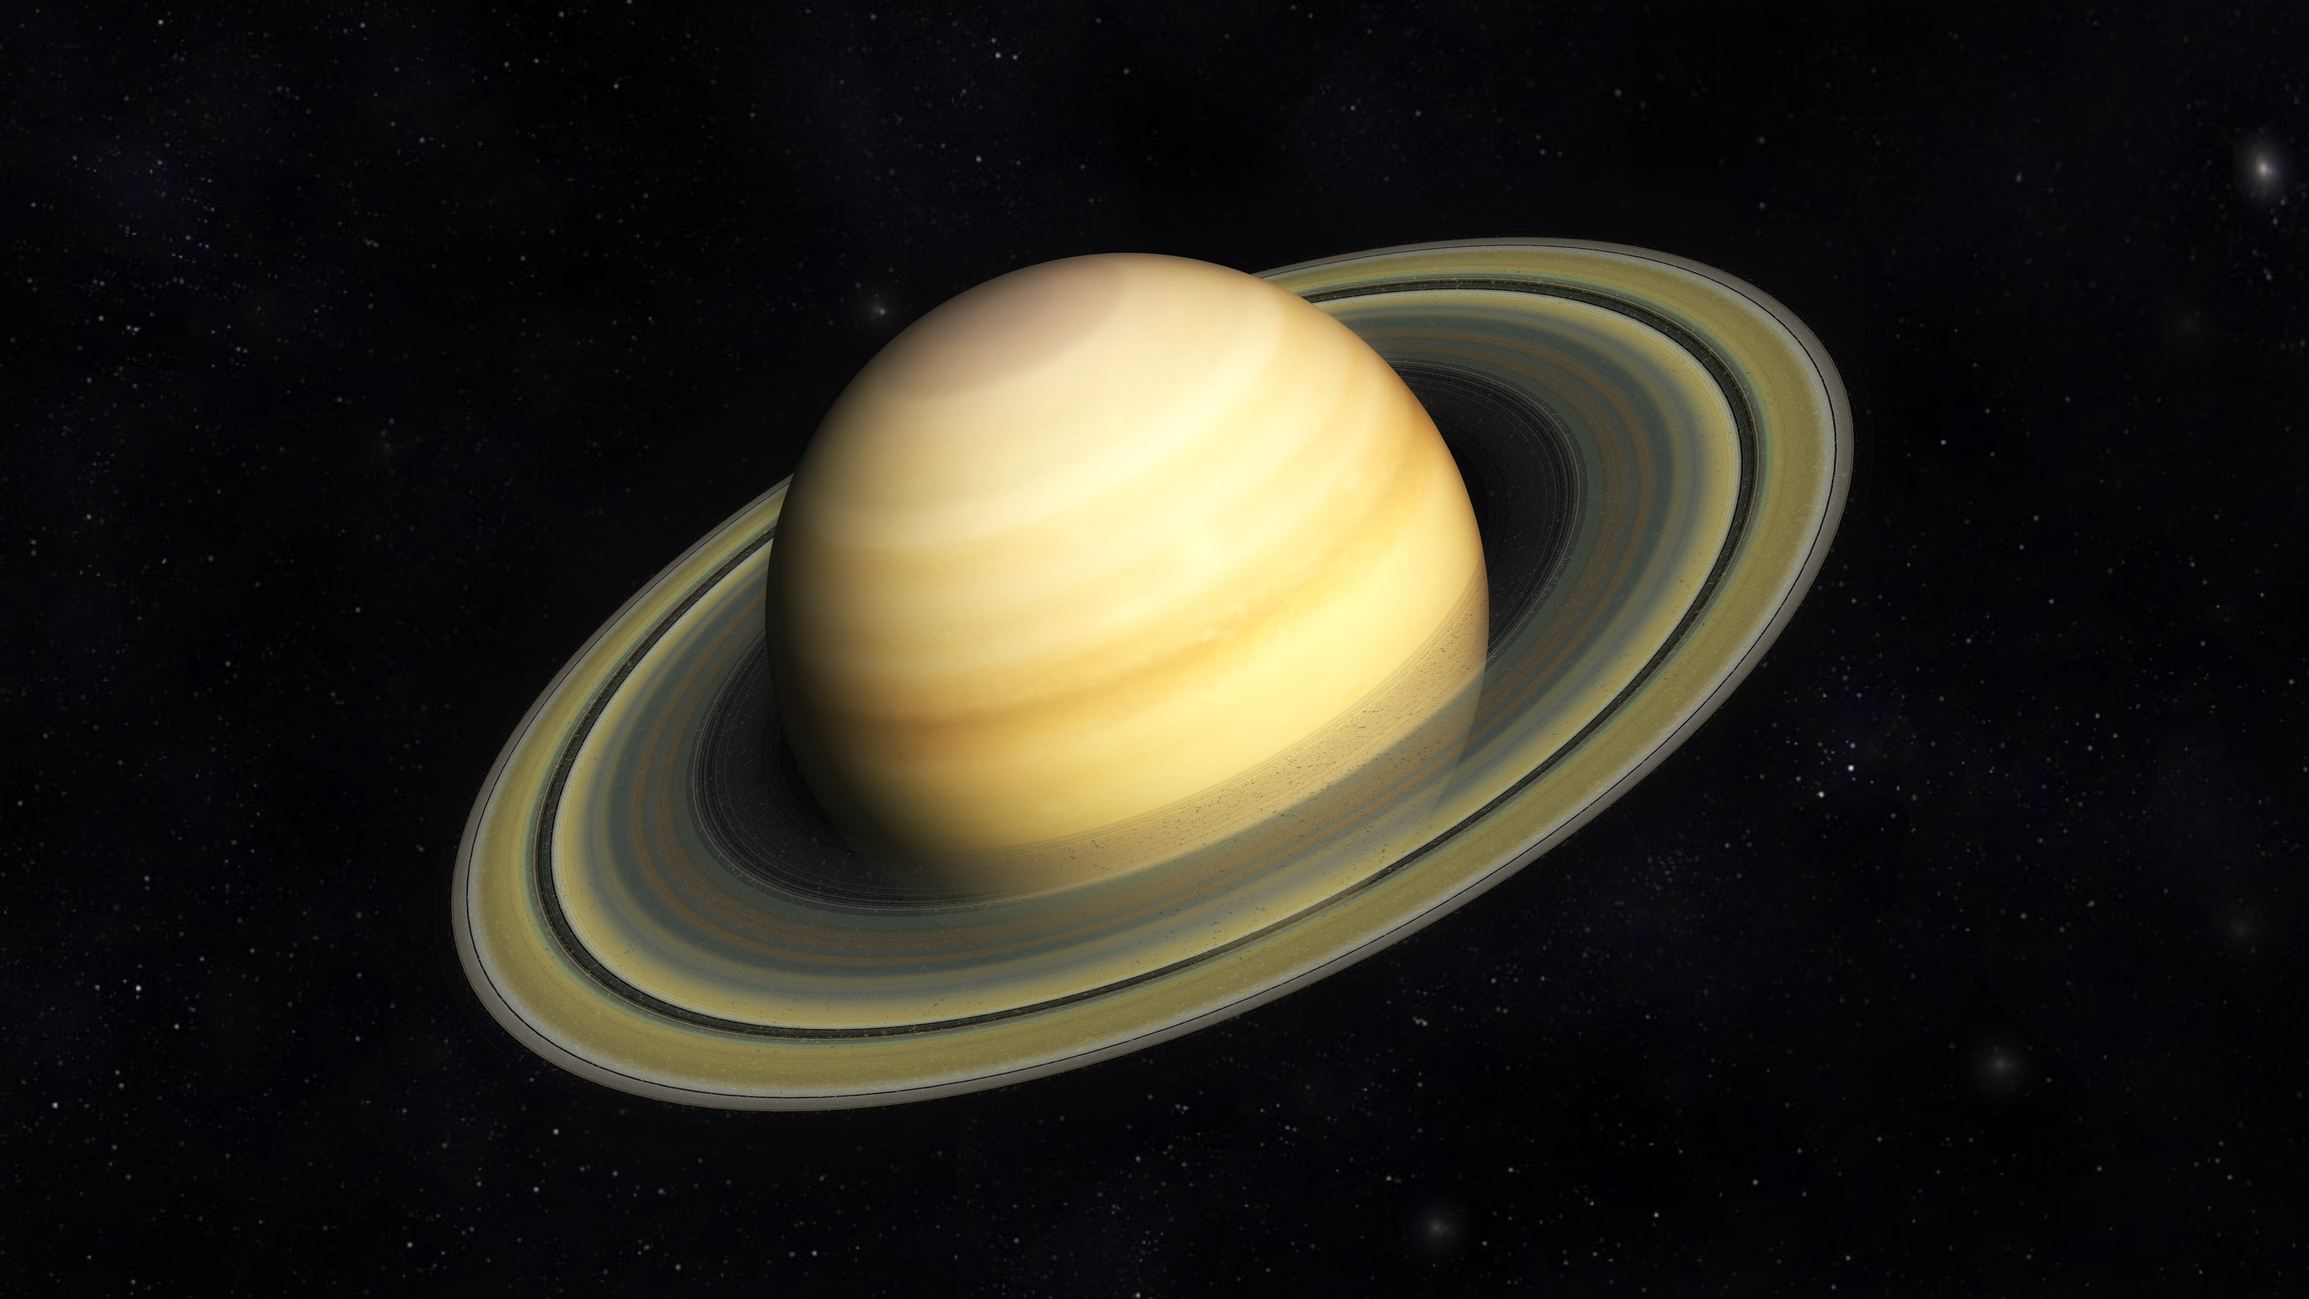 The planet Saturn. Photo by 3quarks/iStock/Getty Images.